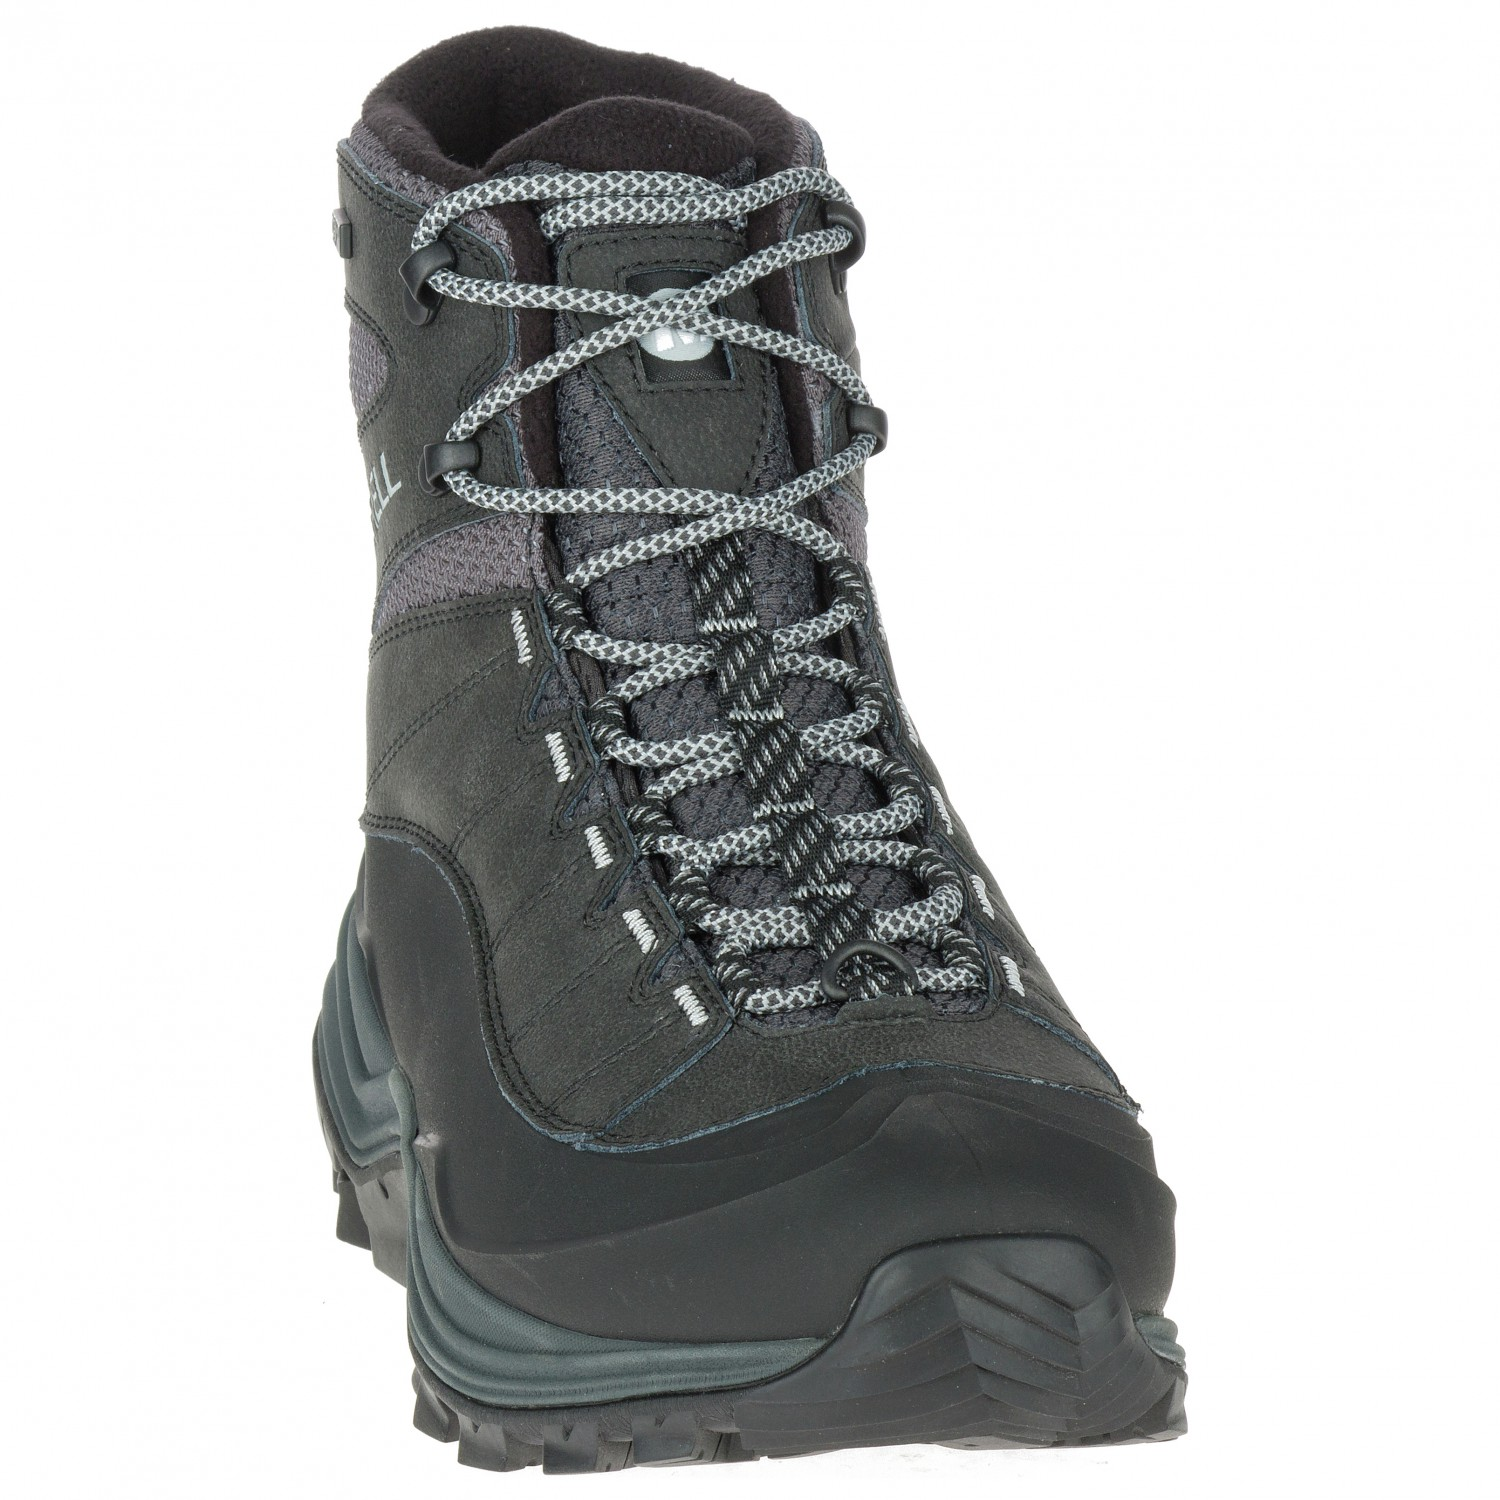 27423e38ce9 Merrell - Thermo Chill Mid Shell Waterproof - Winter boots